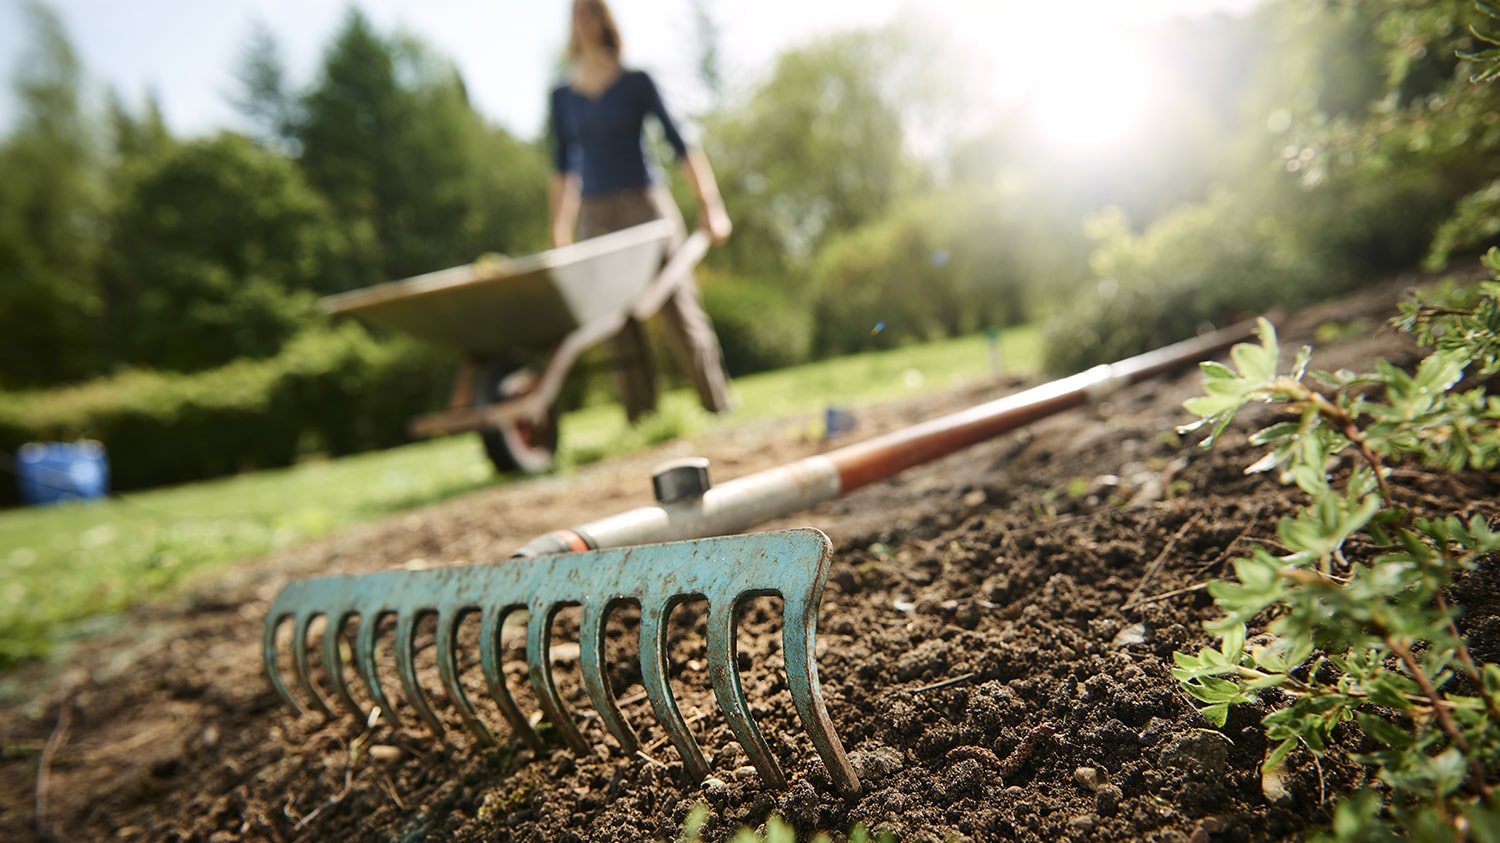 Mothers Day Garden Gift Ideas Blog - rake on ground in garden with low depth of field woman in background